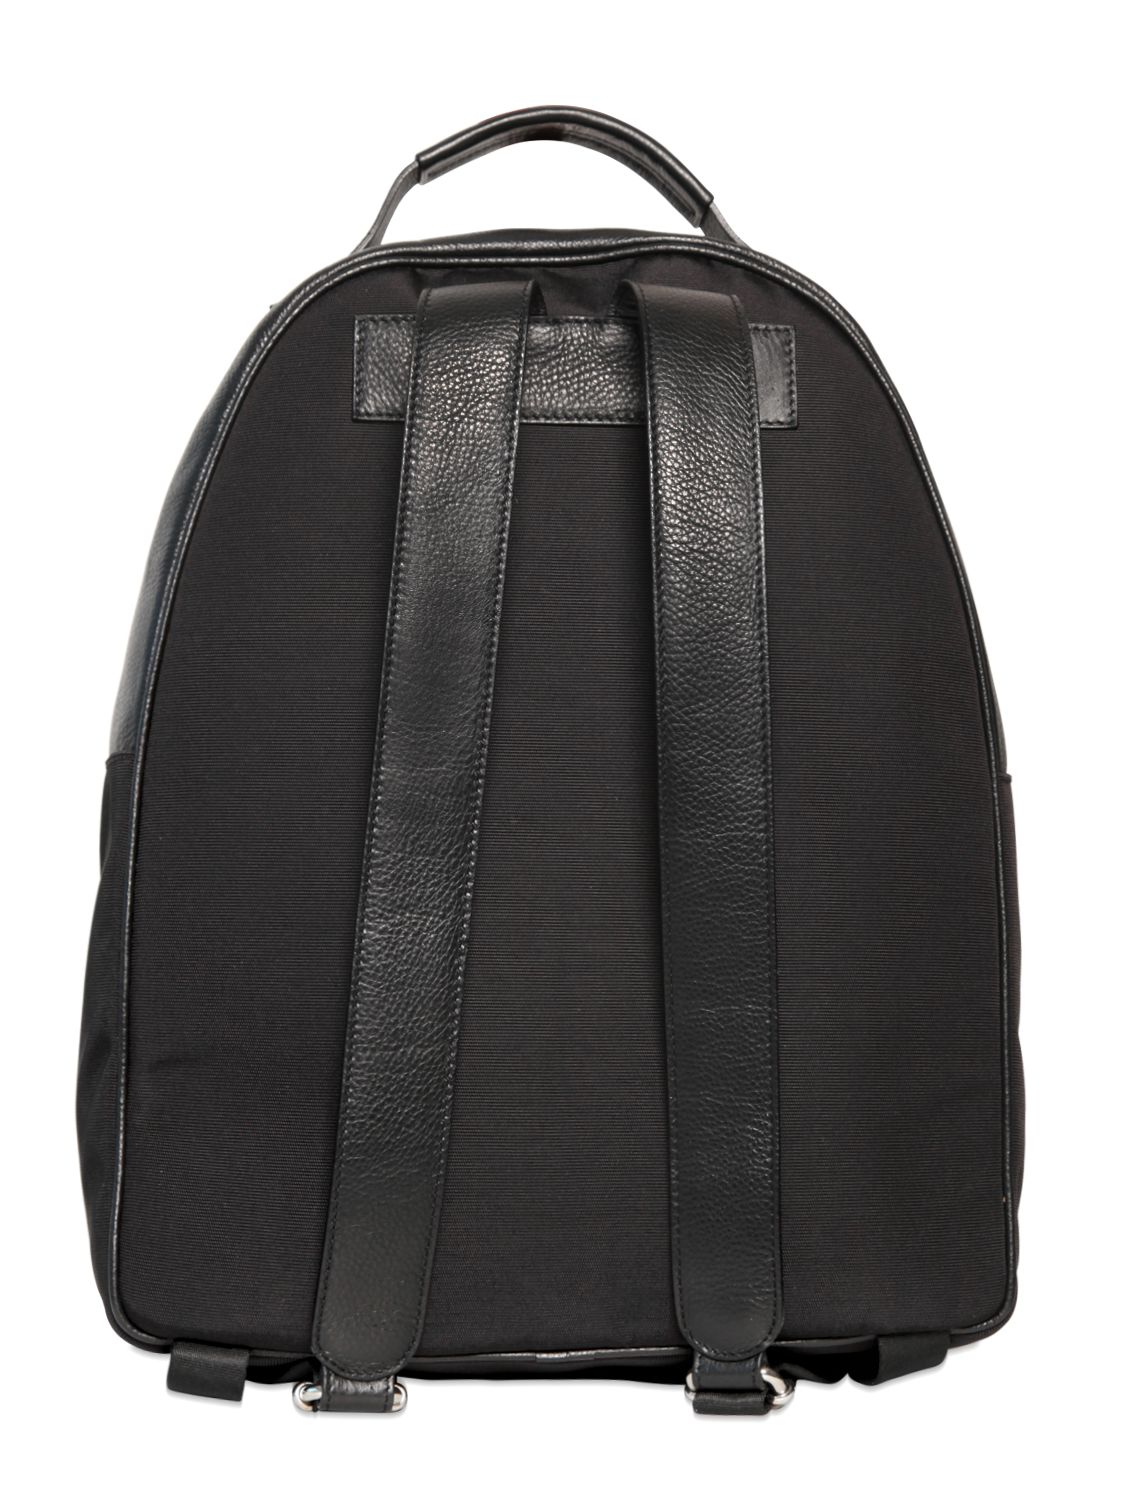 a6f01a0c3a81 Lyst - Diesel Black Gold Grained Leather Backpack in Black for Men